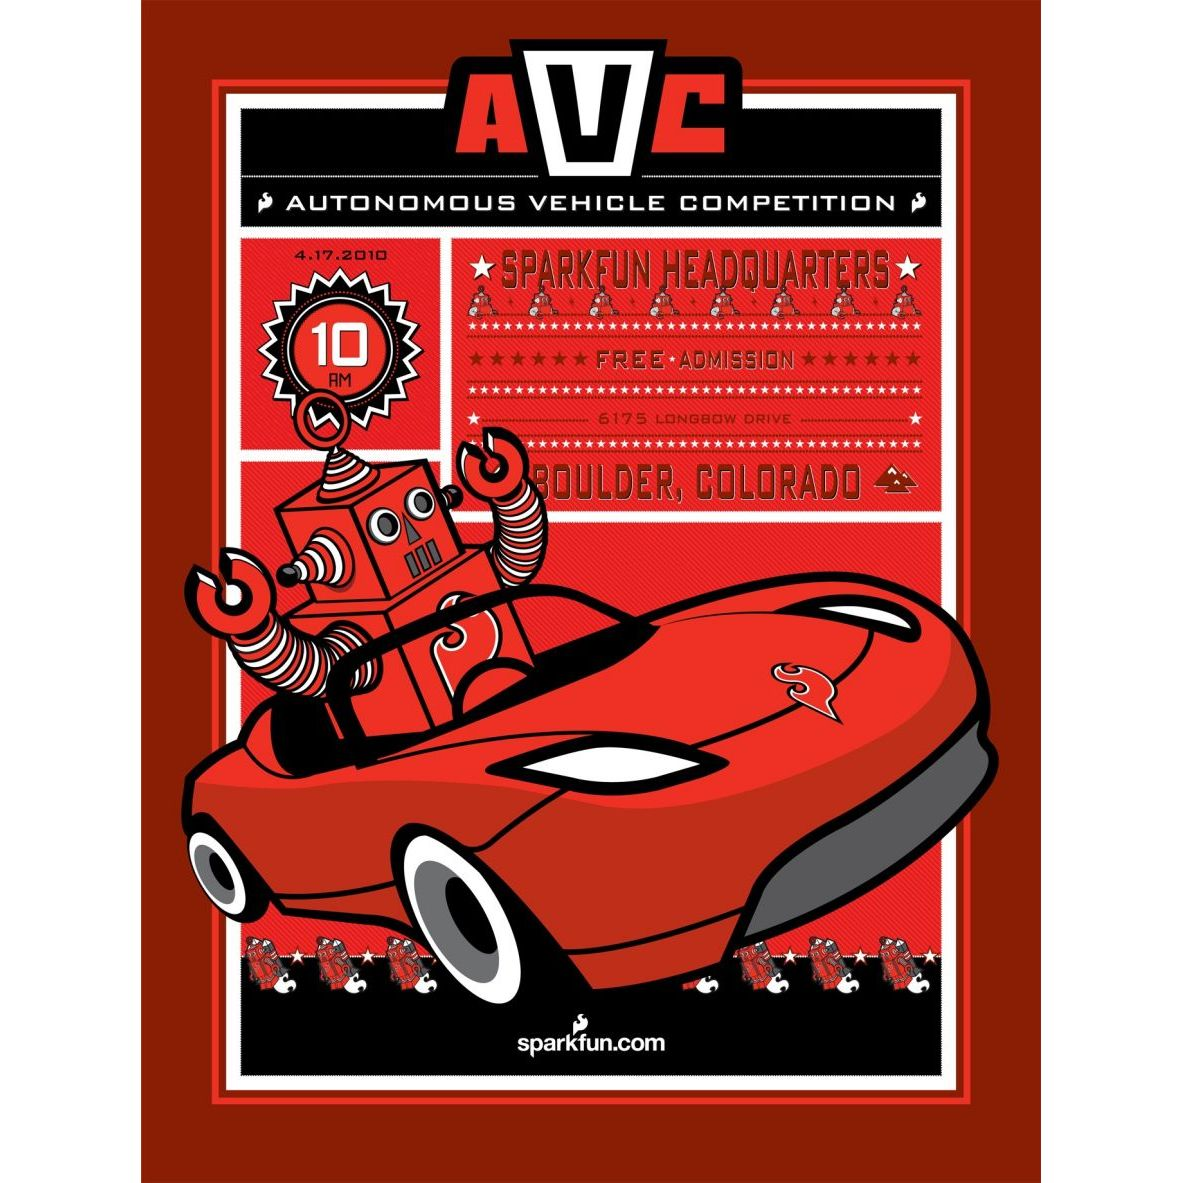 Autonomous Vehicle Competition Poster 2010